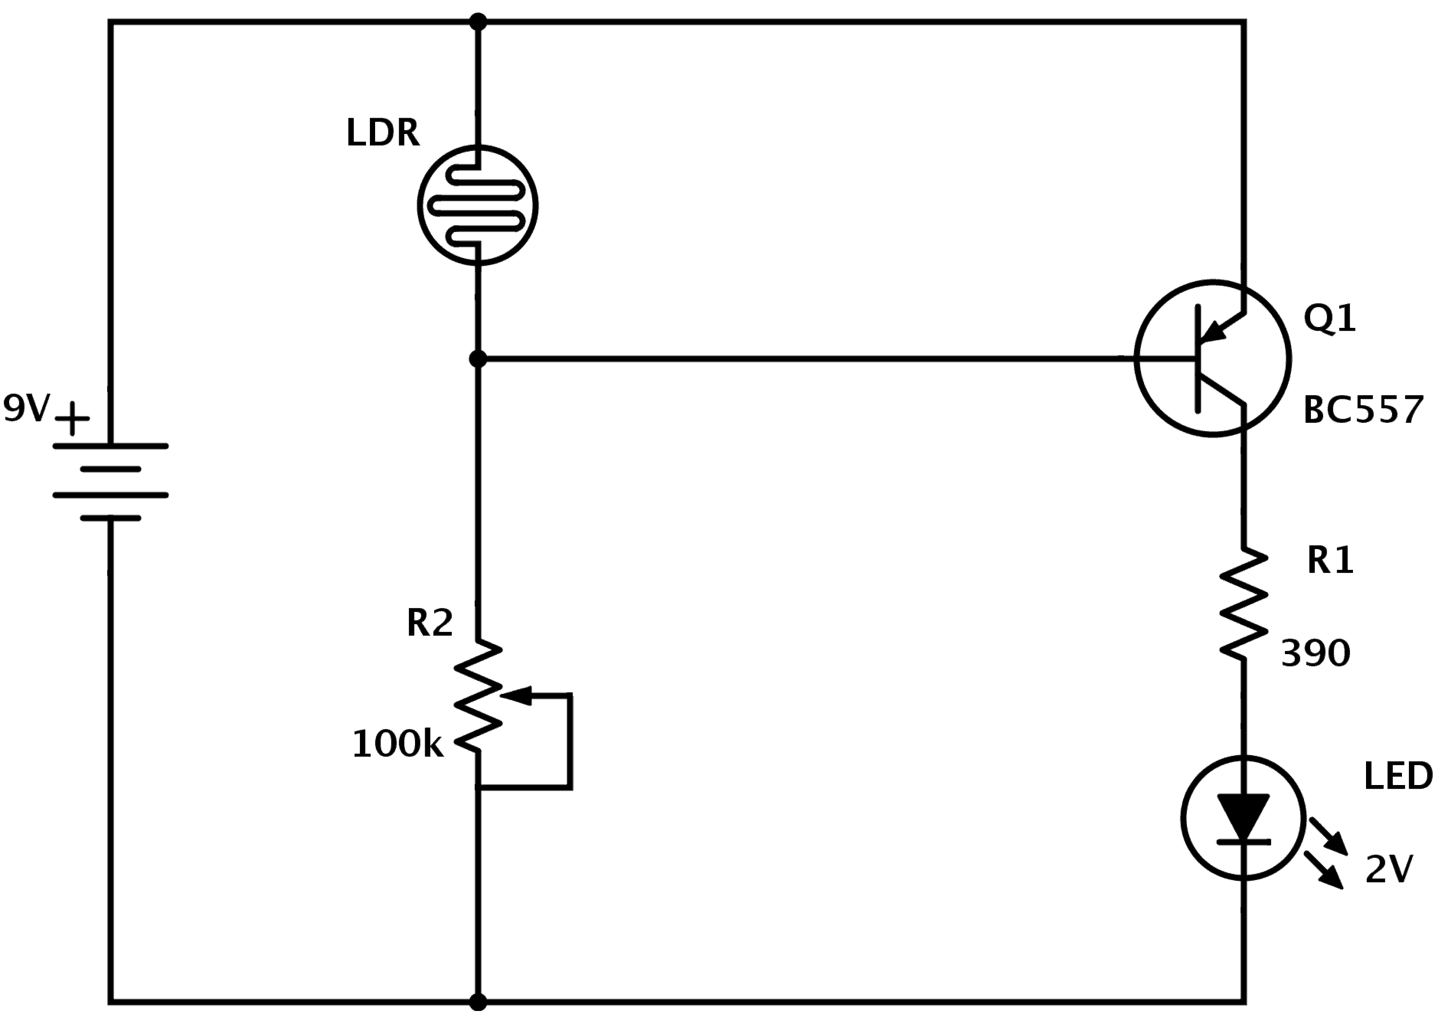 Ldr Circuit Diagram Build Electronic Circuits Crt Monitor Schematic Datasheet Application Note With Pnp Transistor Dark Detector